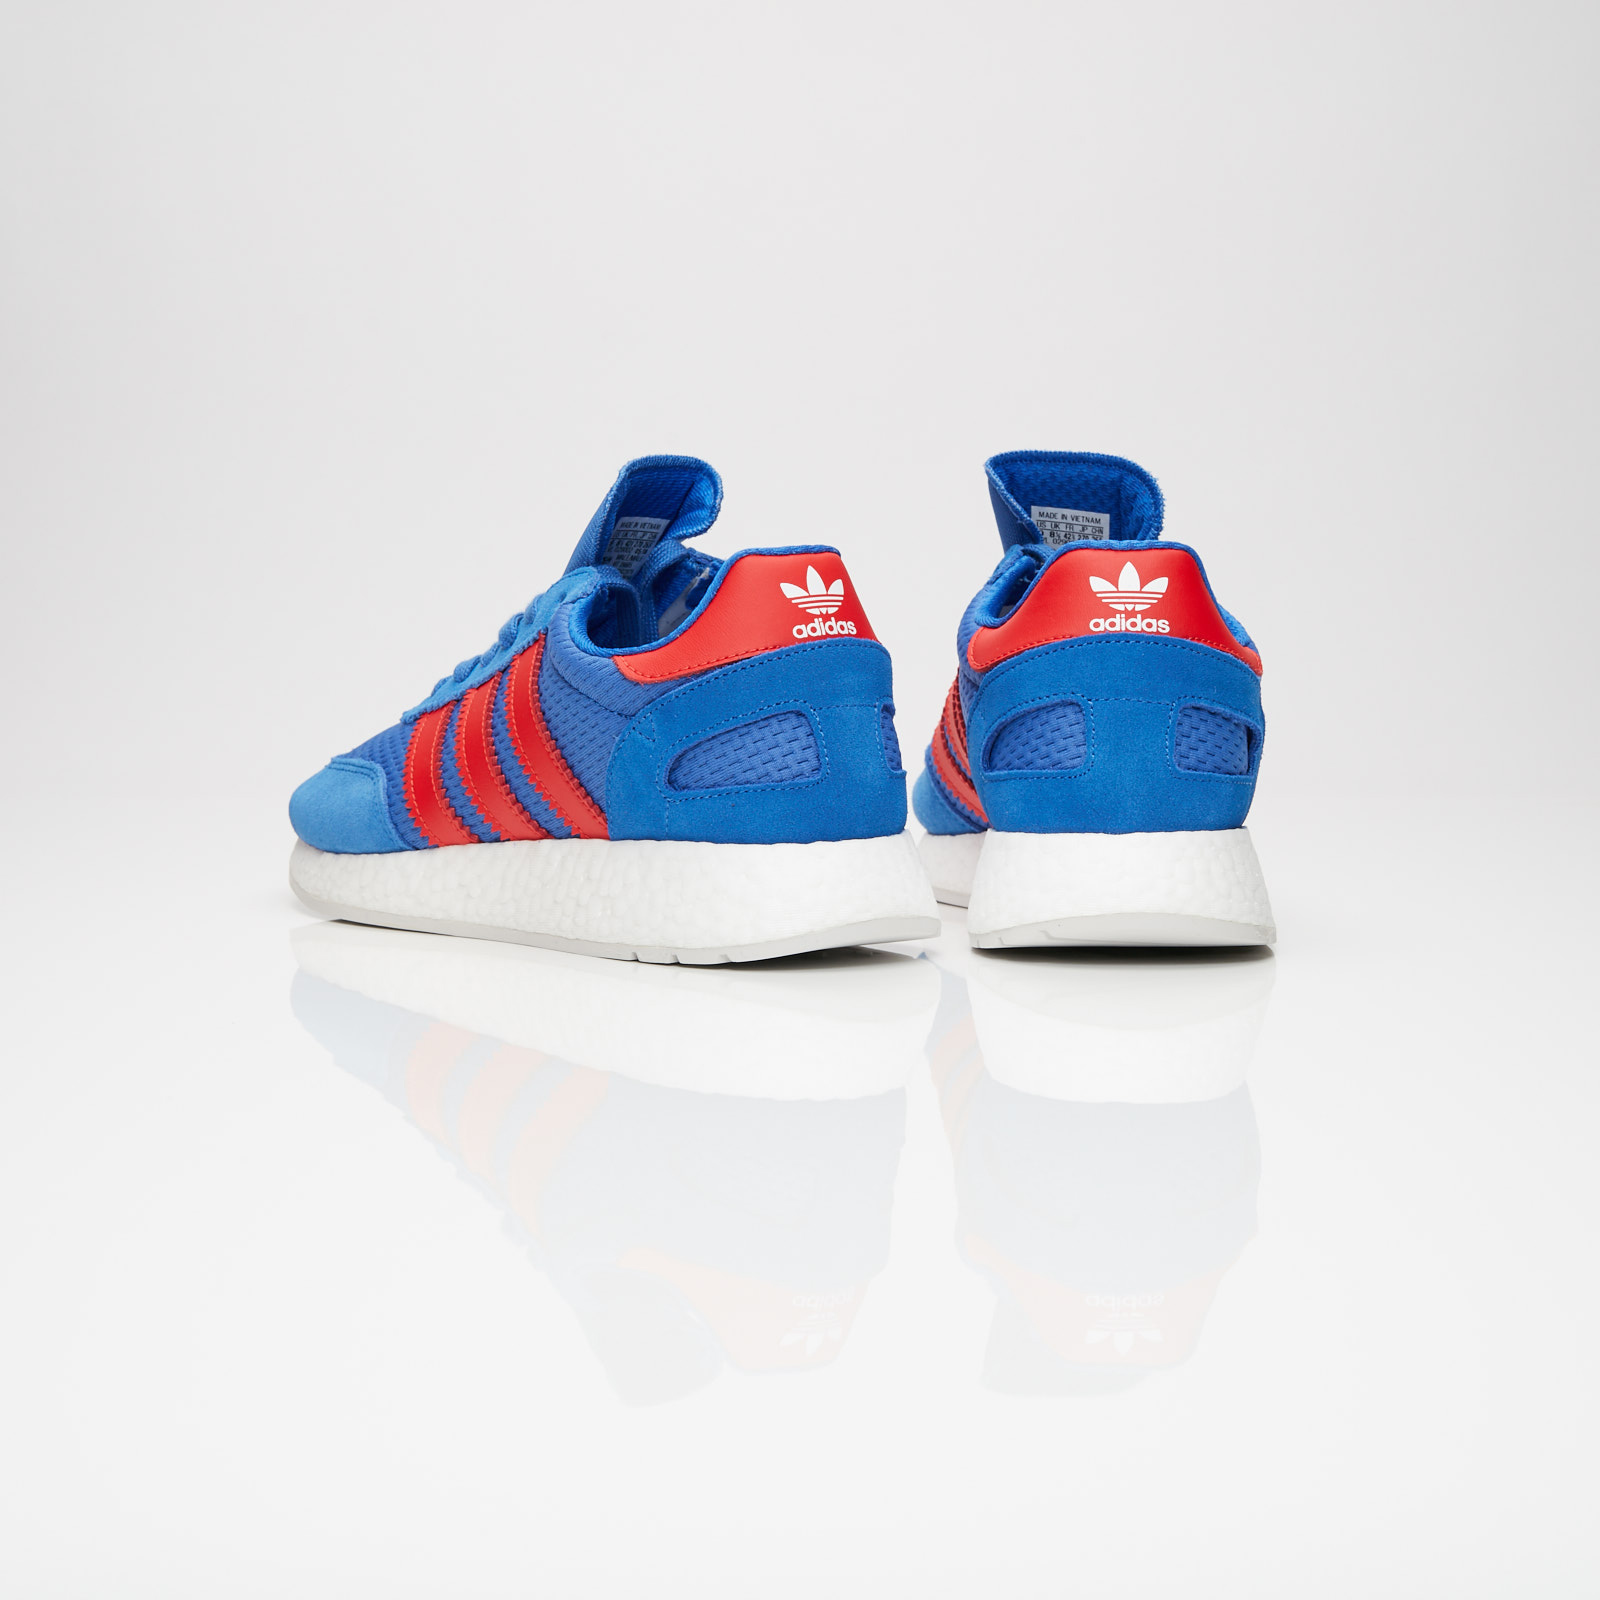 02-adidas-i-5923-hi-res-blue-red-d96605